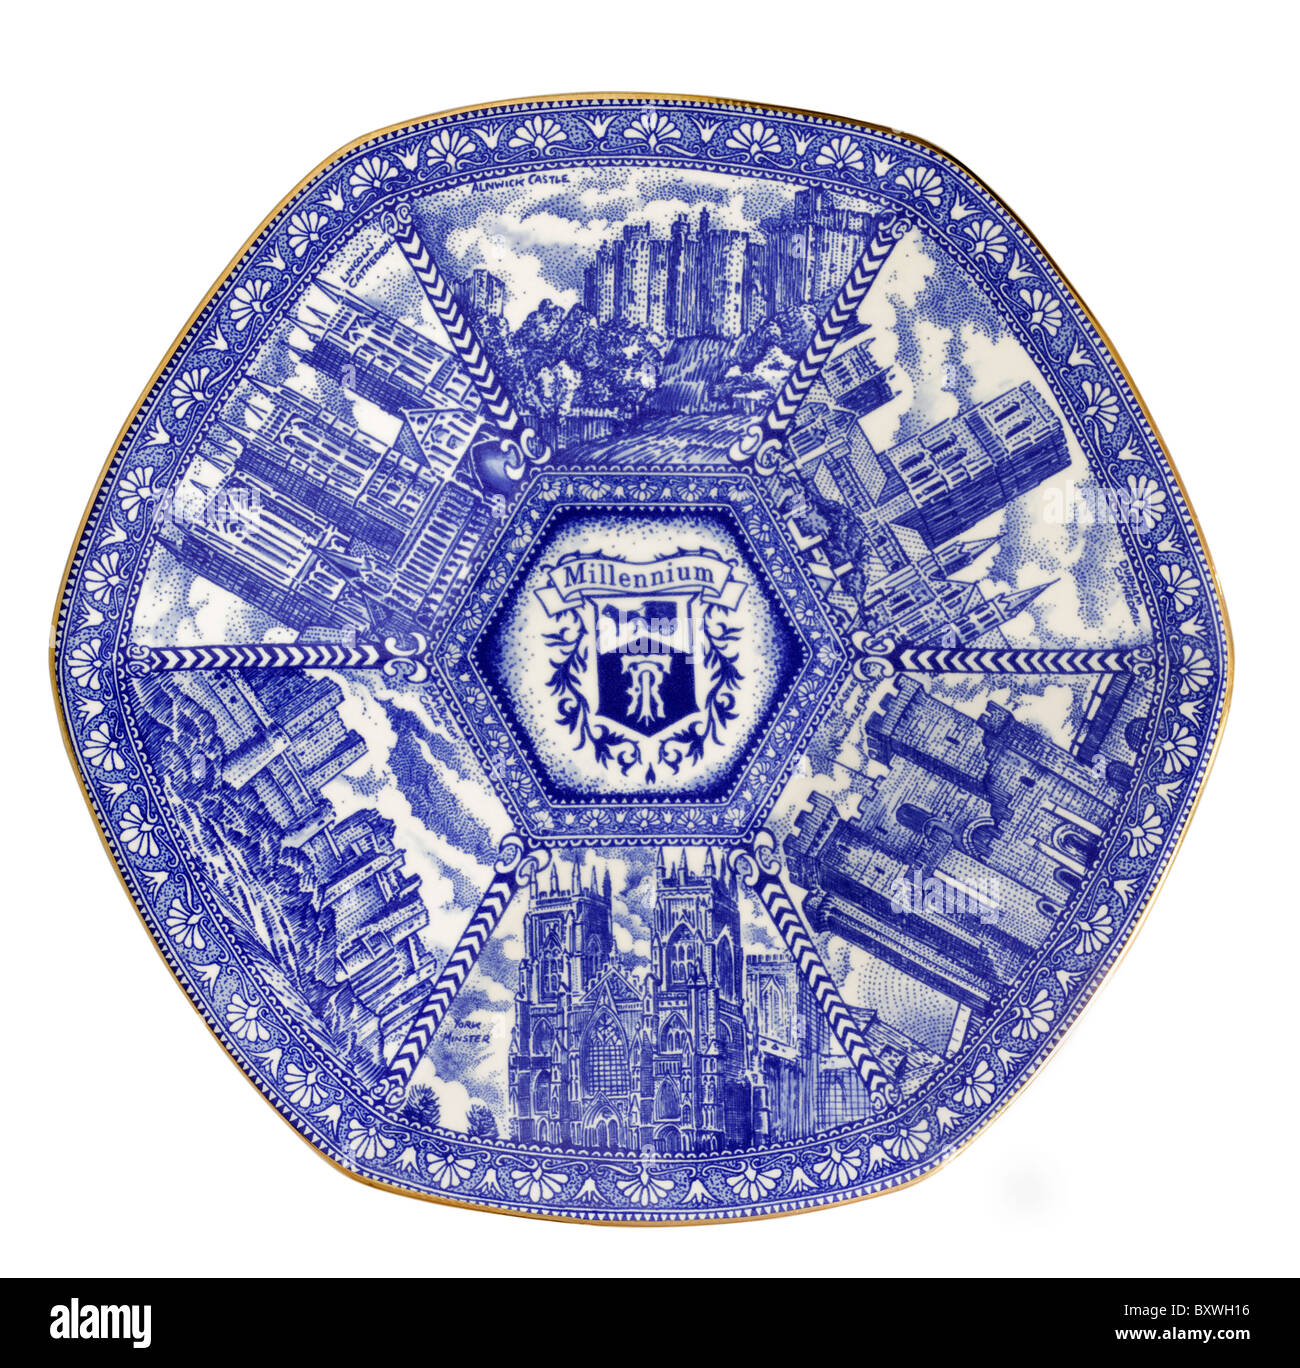 Blue and white plate commemorating the millennium with British landmarks - Stock Image